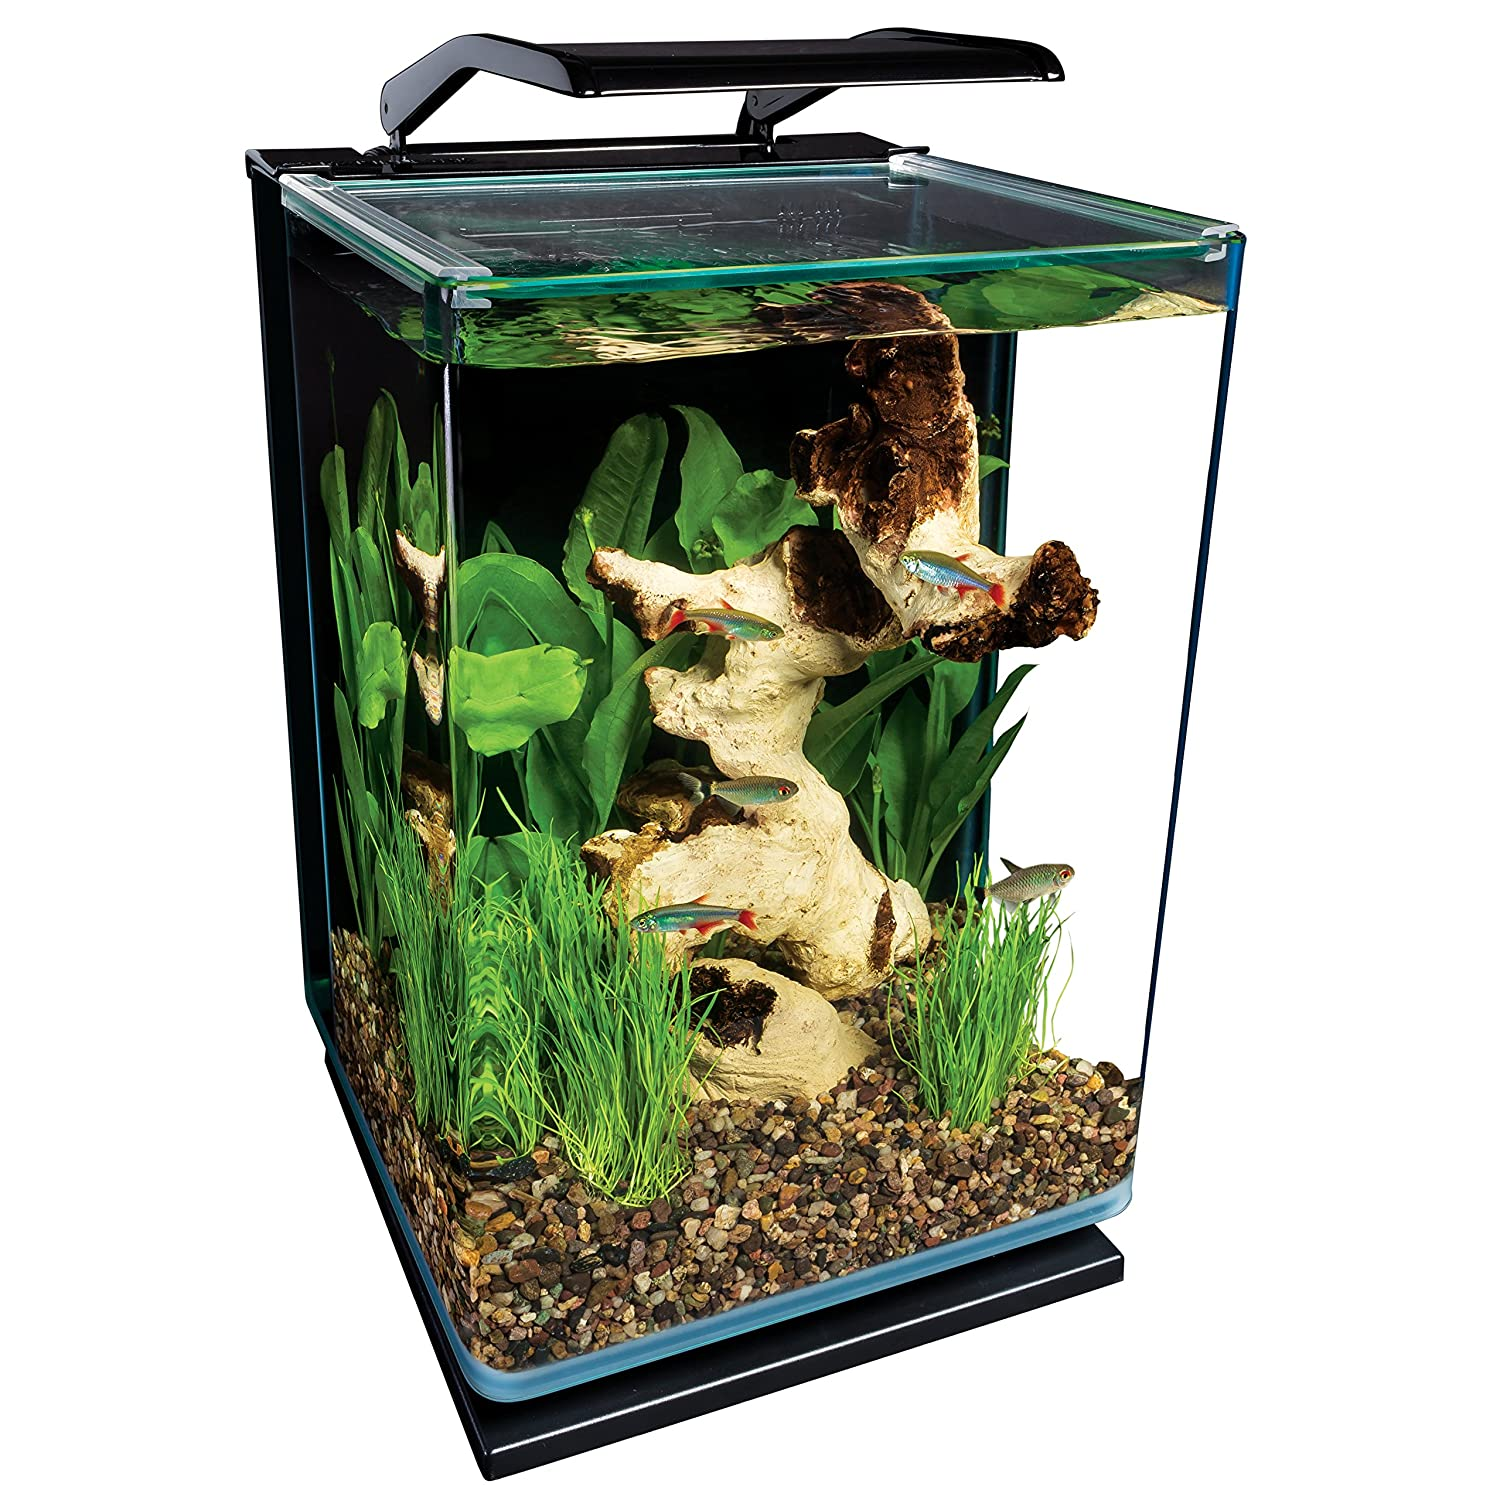 Best 5 gallon betta tank try samurai fighting fish betta for 20 gallon fish tank size